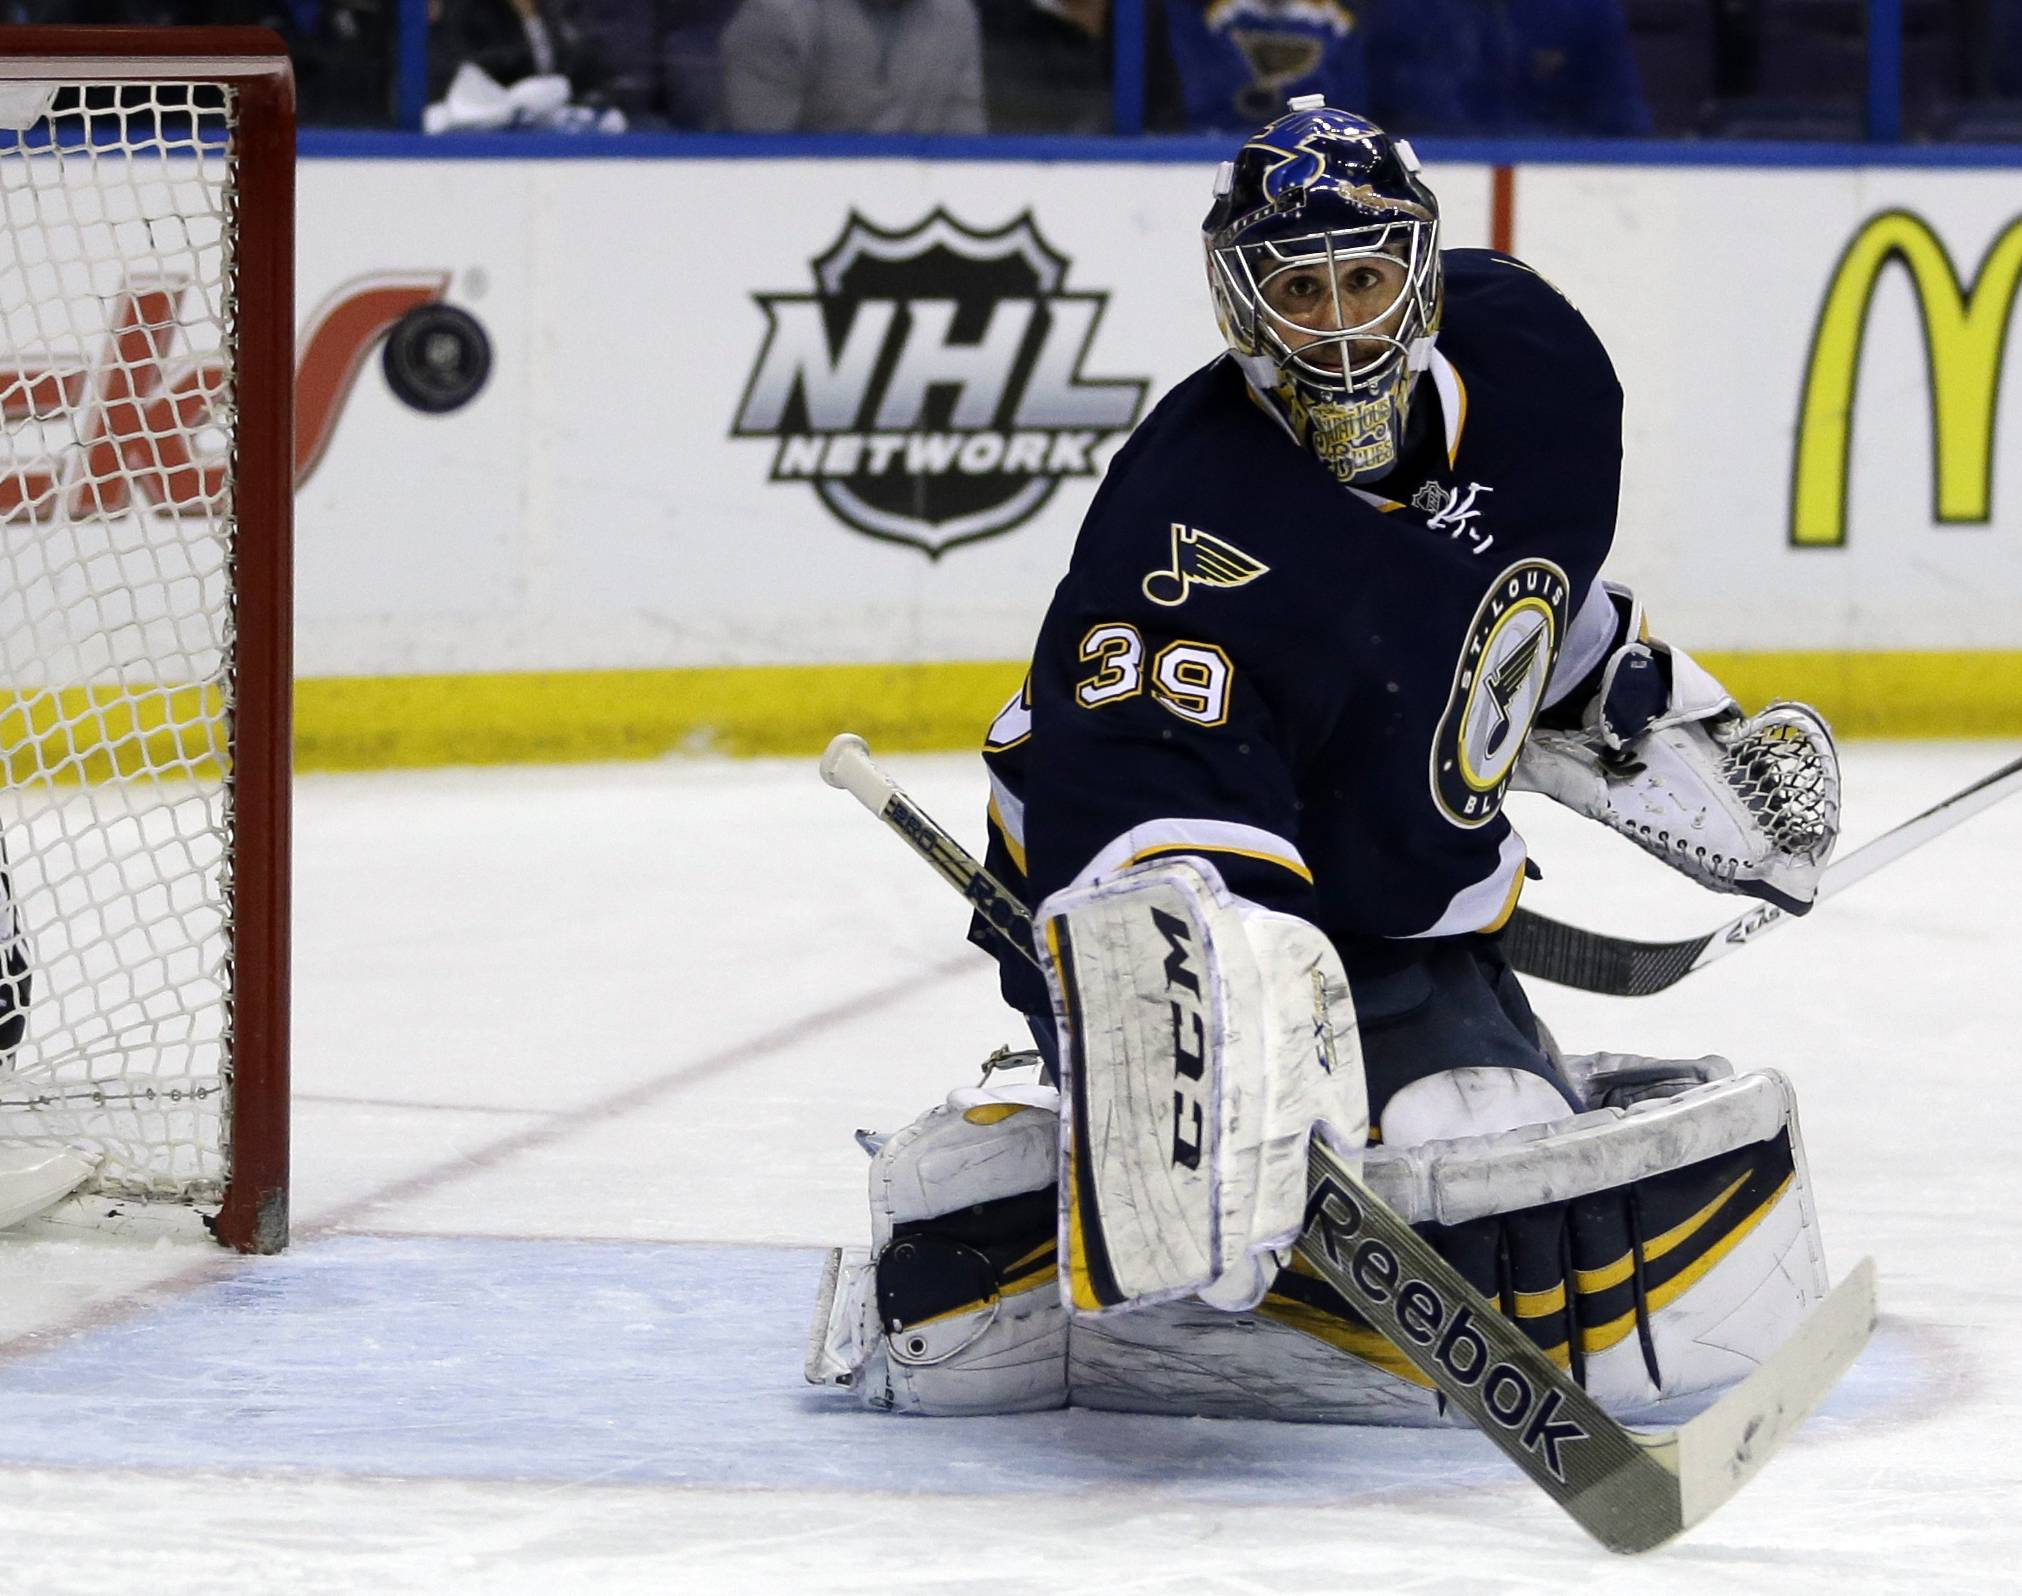 Goalie Ryan Miller and the Blues are next up for the Blackhawks, the first-round playoff series starting Thursday night at St. Louis.